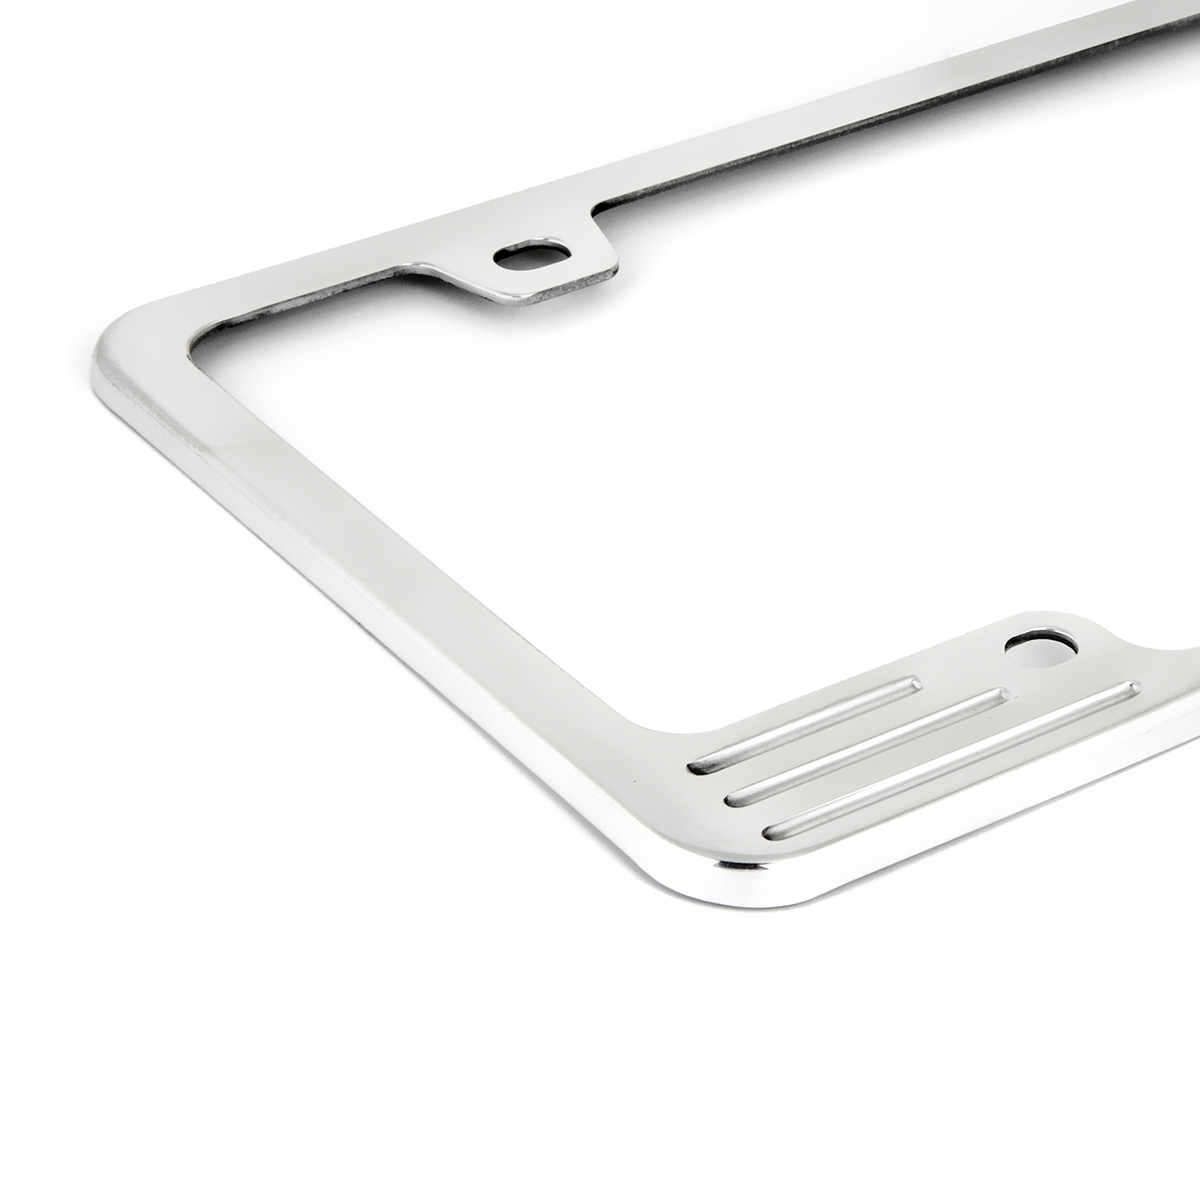 60470 Aluminum License Plate Frame with 4 Holes - Close Up View